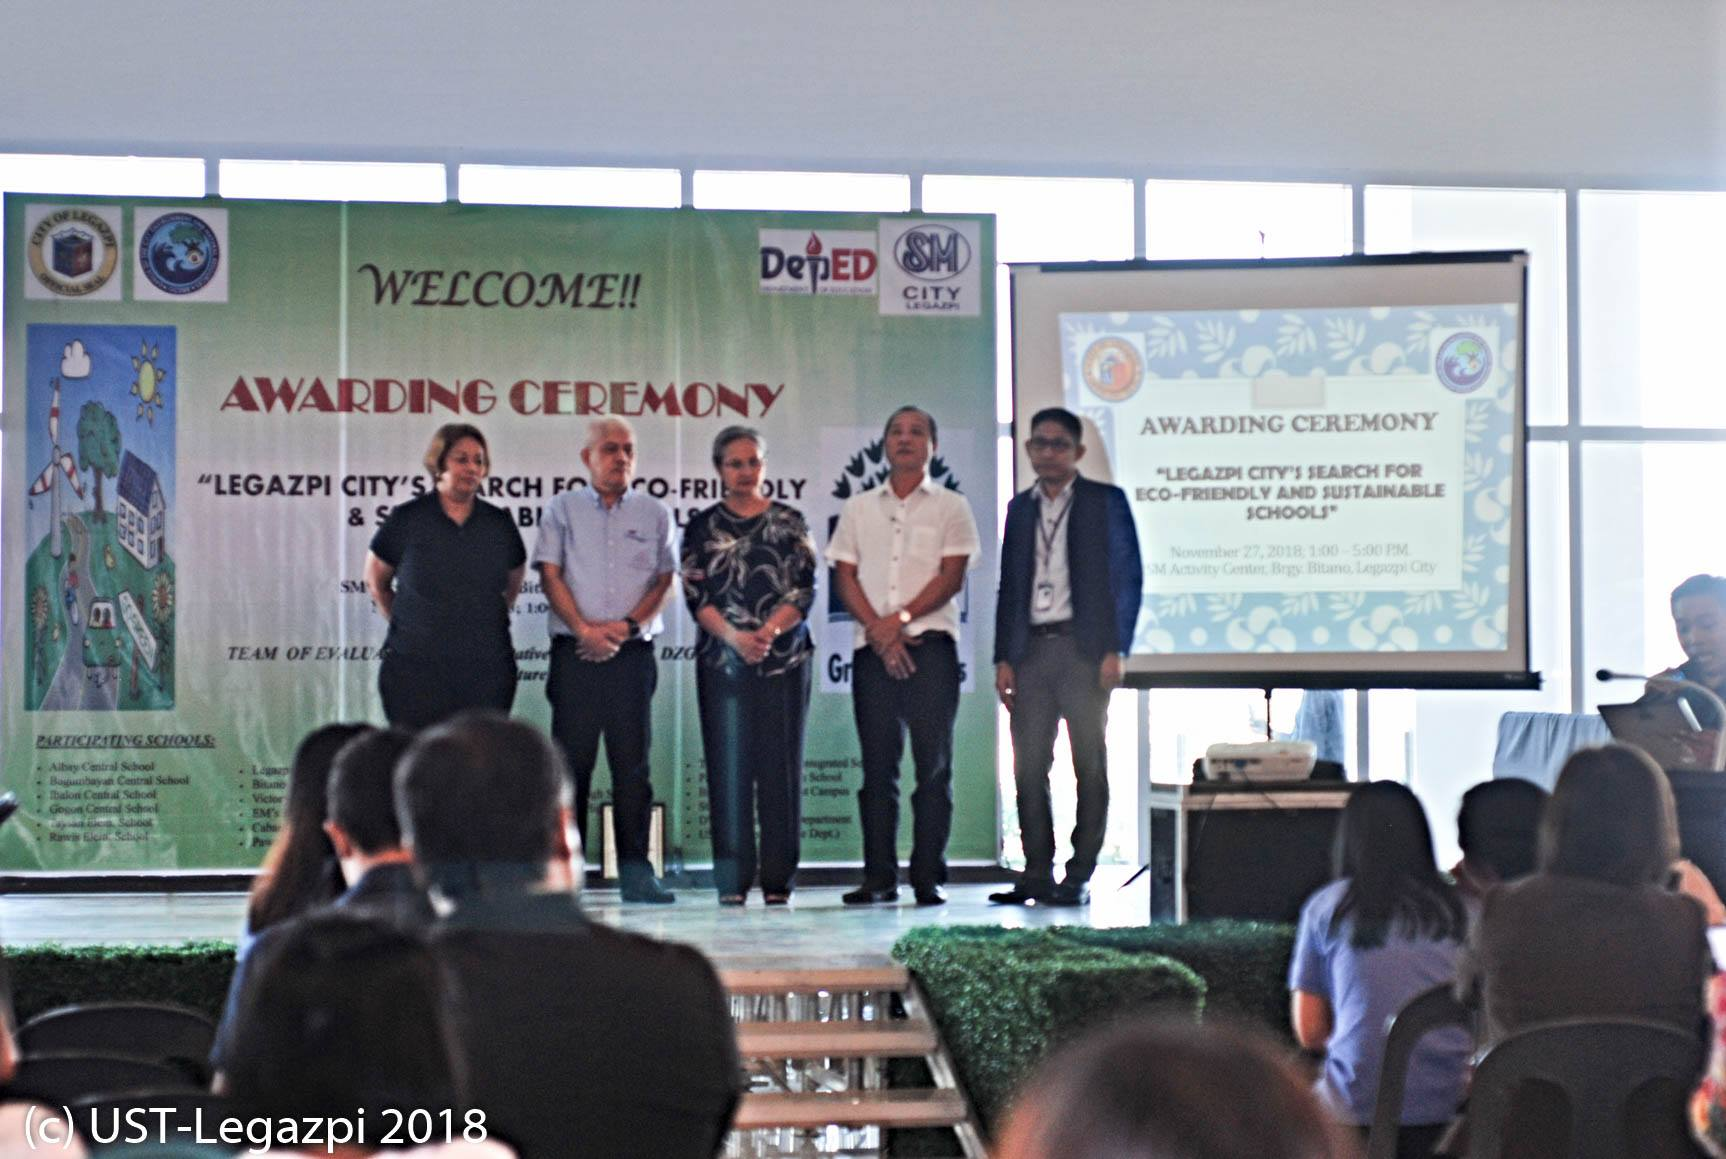 Search for Eco-Friendly & Sustainable Schools Awarding Ceremony